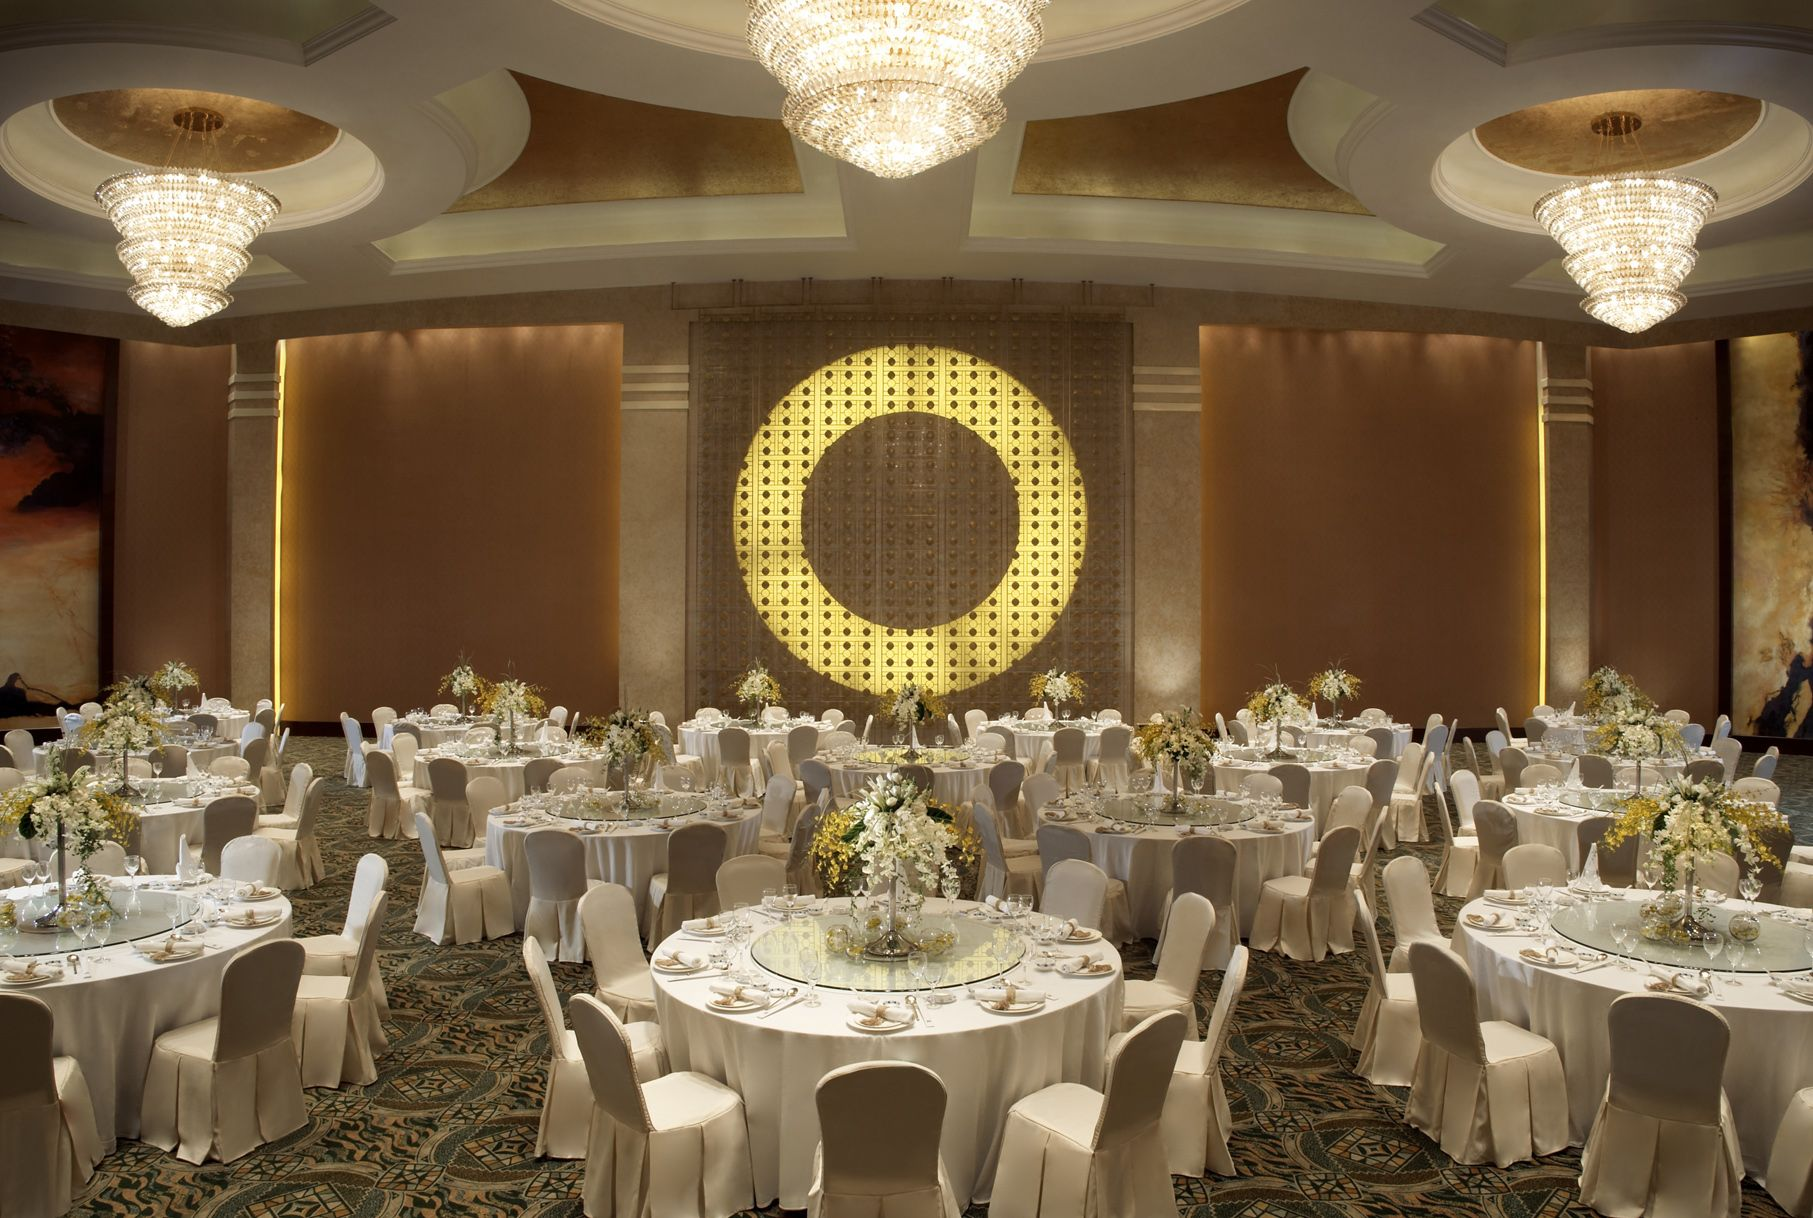 Personalised service at the villa club of kempinski hotel haitang bay - The Ballroom At Mandarin Oriental Jakarta Ceilings Pinterest Mandarin Oriental Oriental And Ceilings